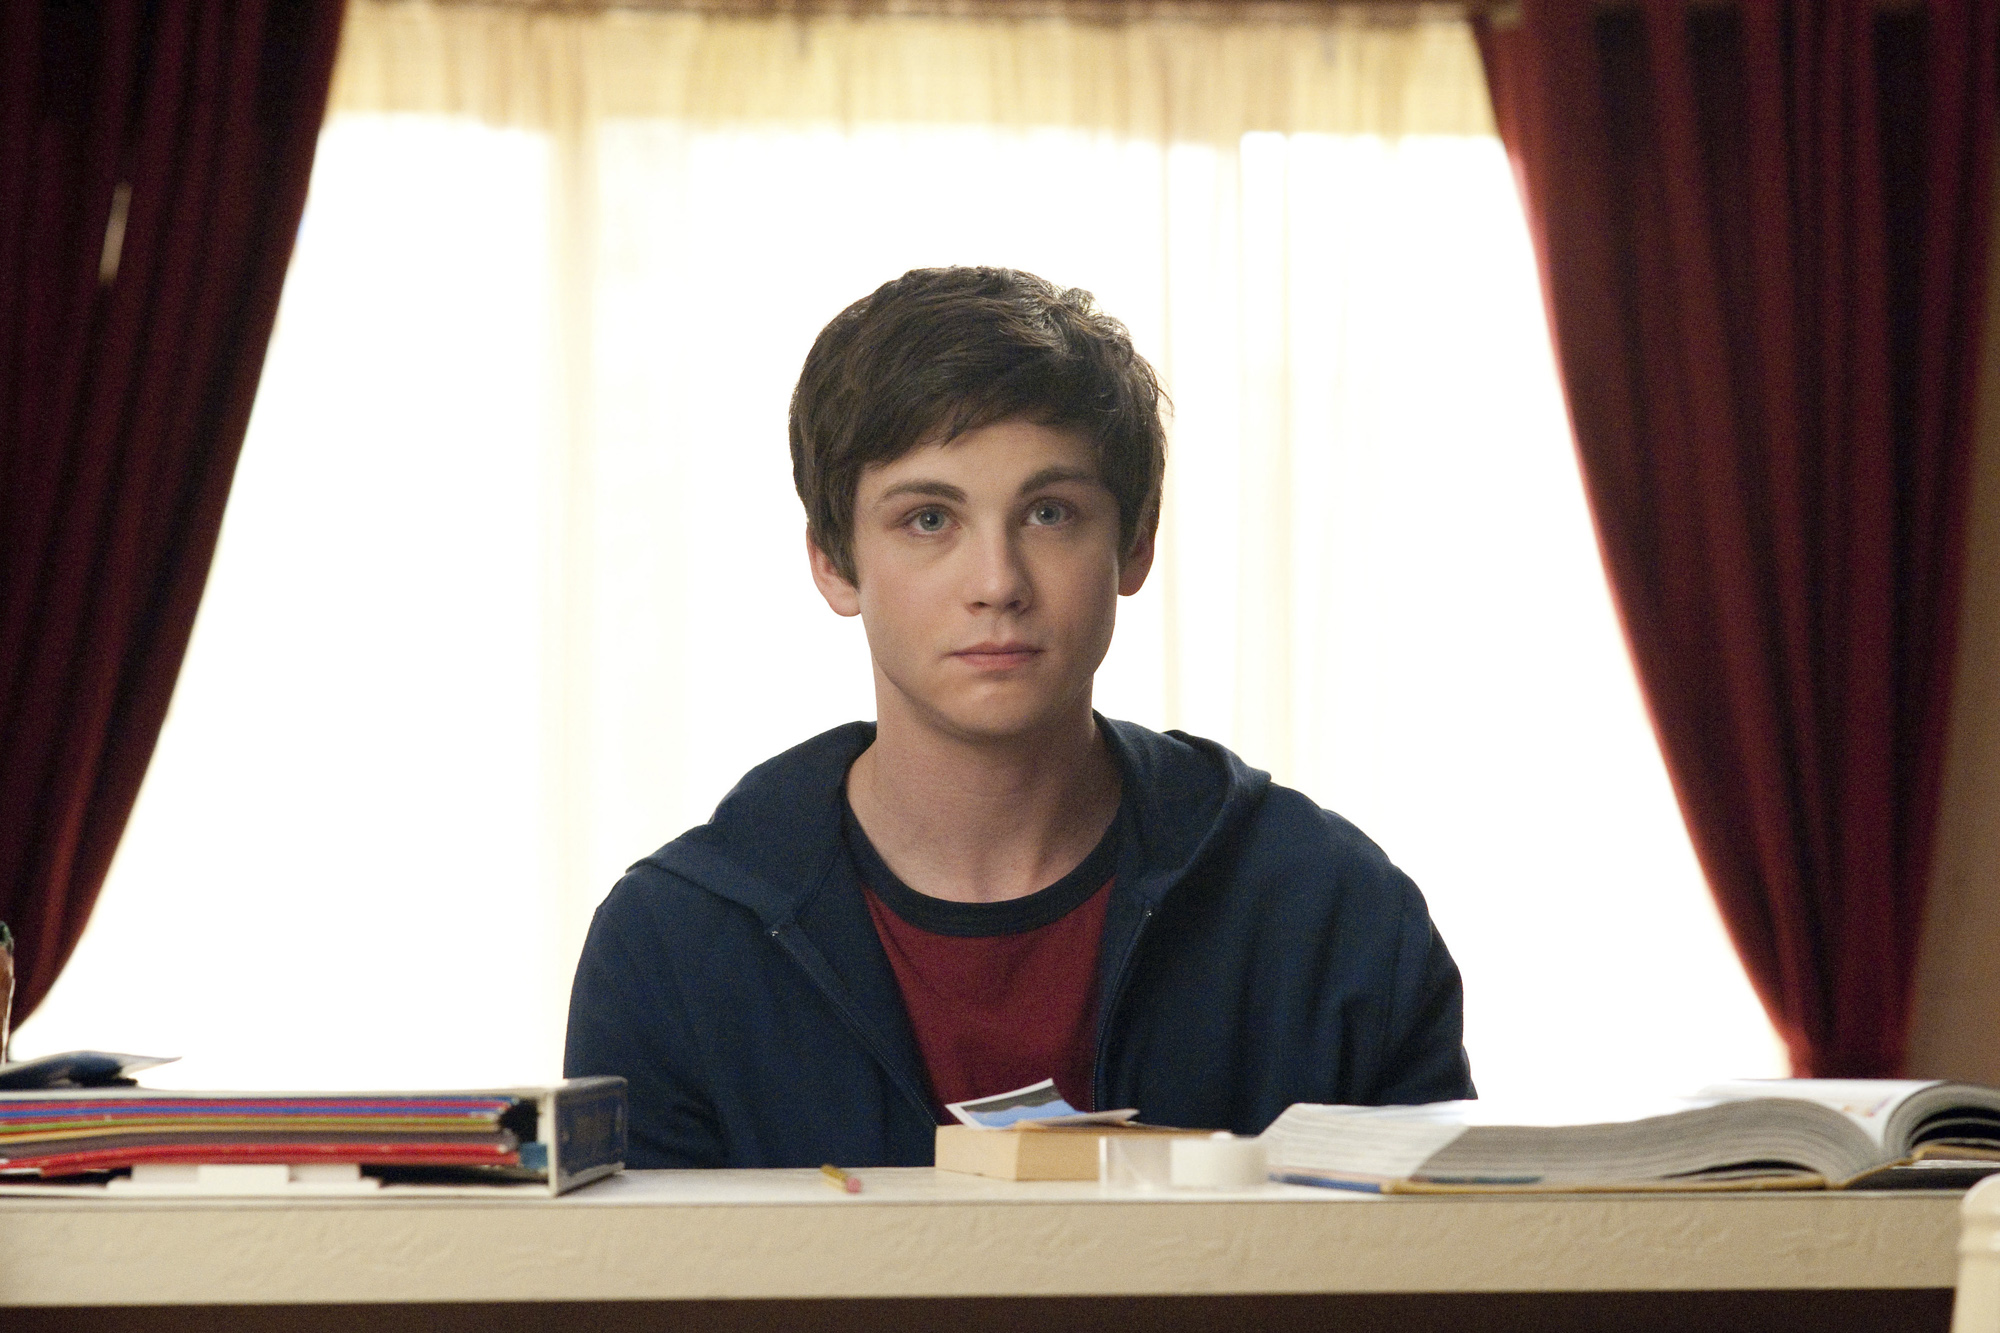 Charlie Kelmeckis (Perks of Being a Wallflower, 2012)